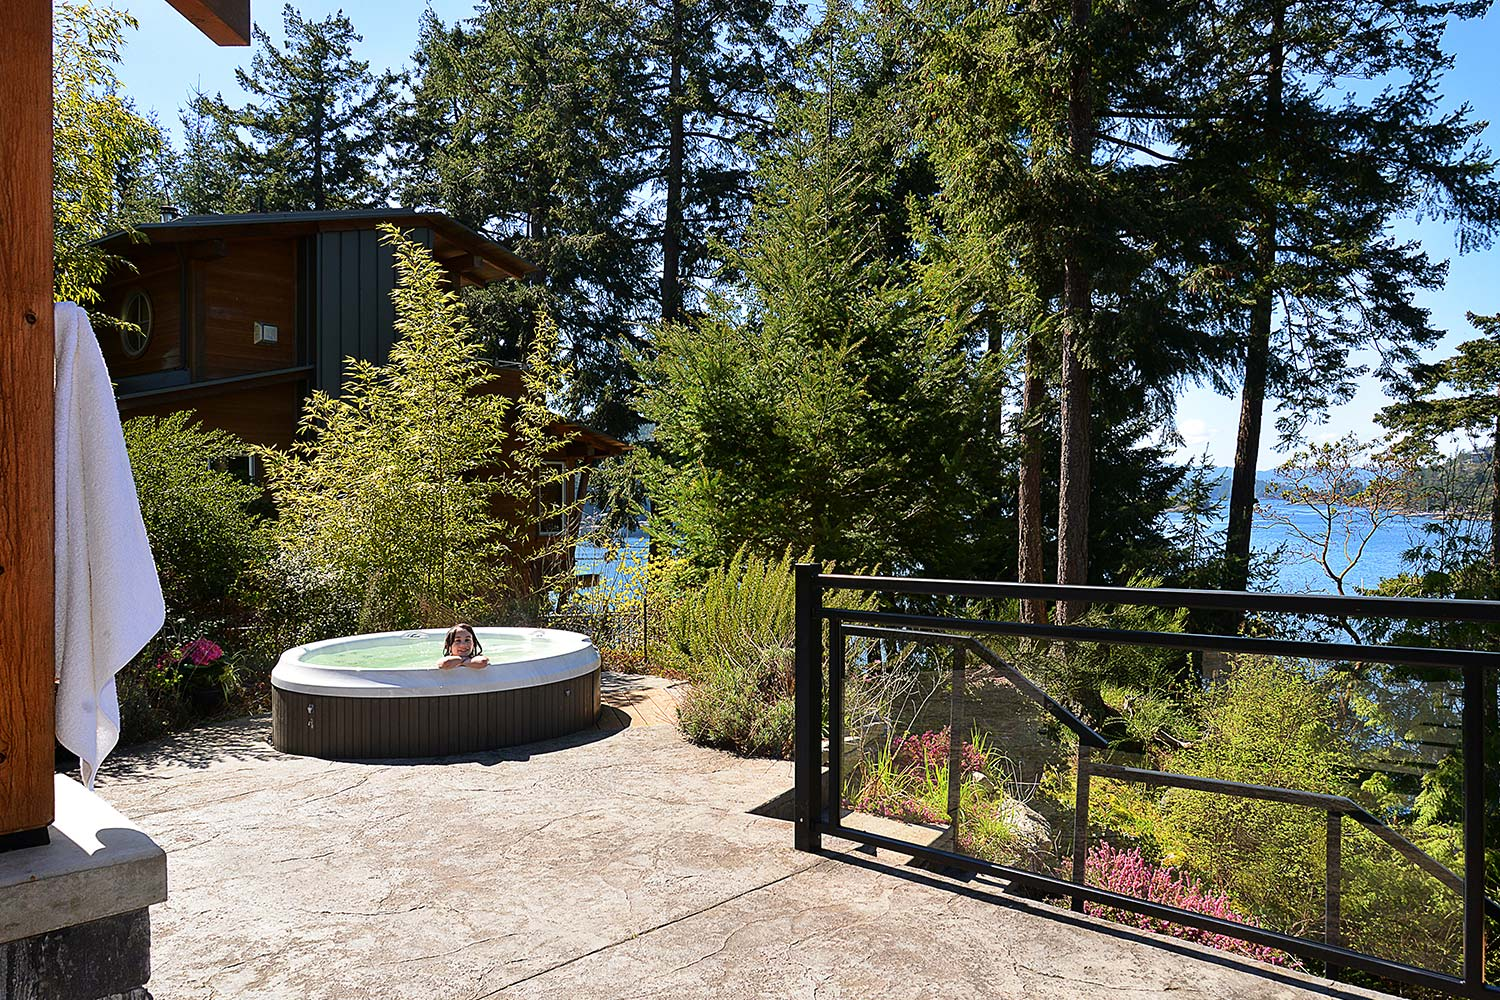 A child relaxes in the hot tub at the front of the house. Places to rent with a private hot tub available at John Henry's.